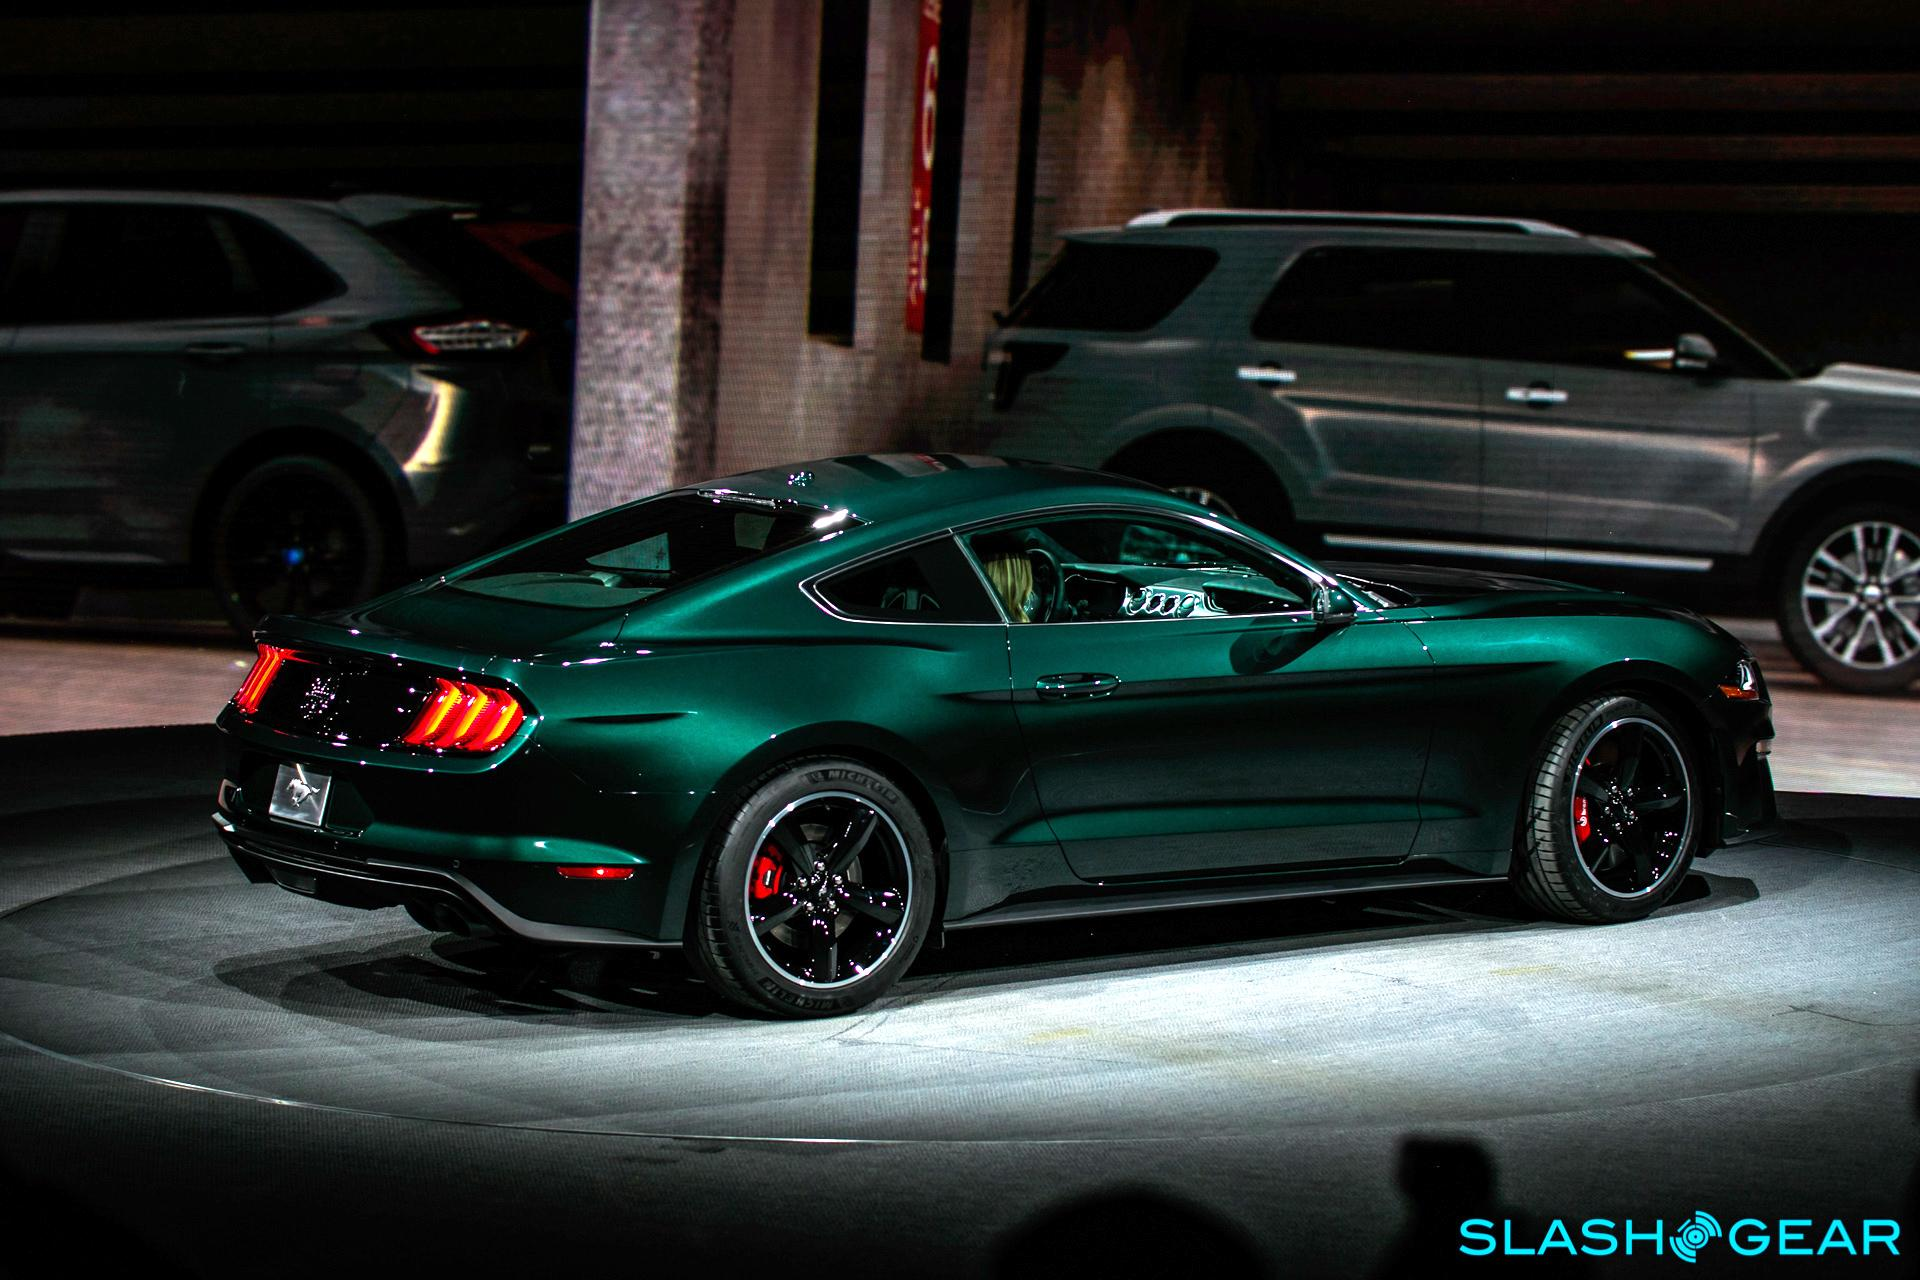 2019 Ford Mustang Sports Car The Bullitt Is Back >> 2019 Ford Mustang Bullitt Price And Power Confirmed Slashgear